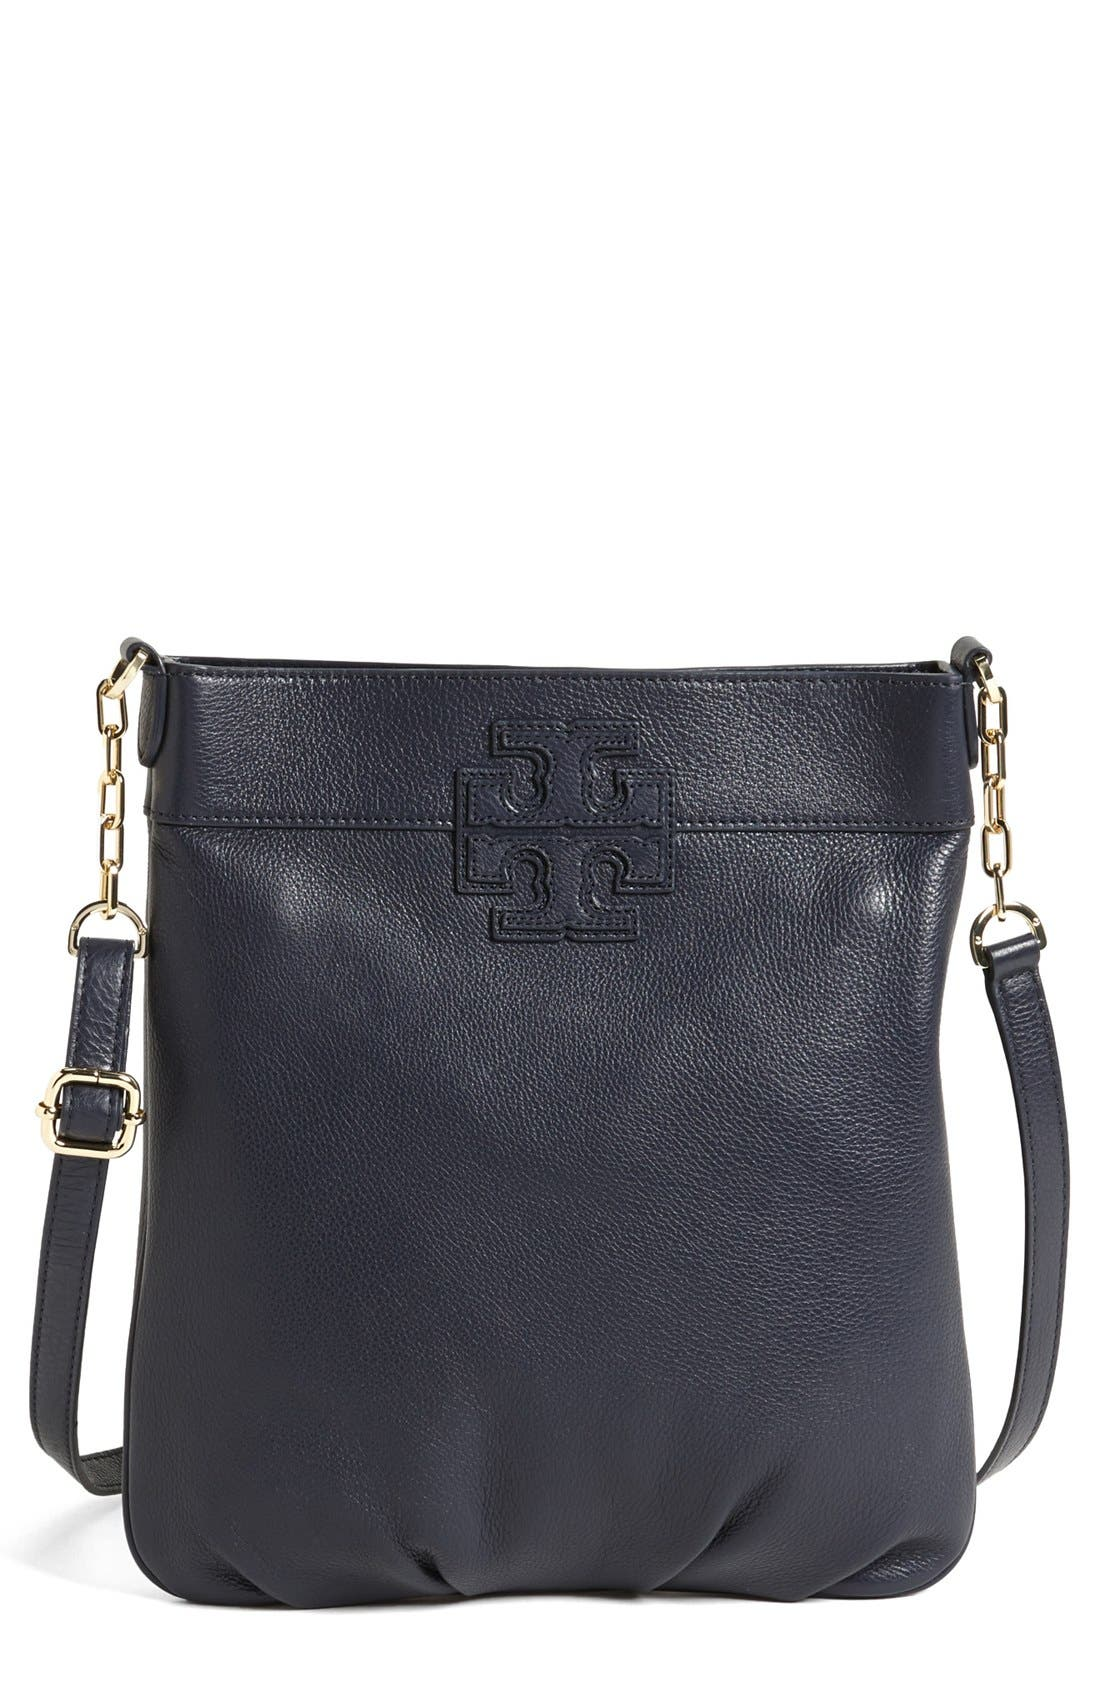 Alternate Image 1 Selected - Tory Burch 'Stacked T' Leather Book Bag